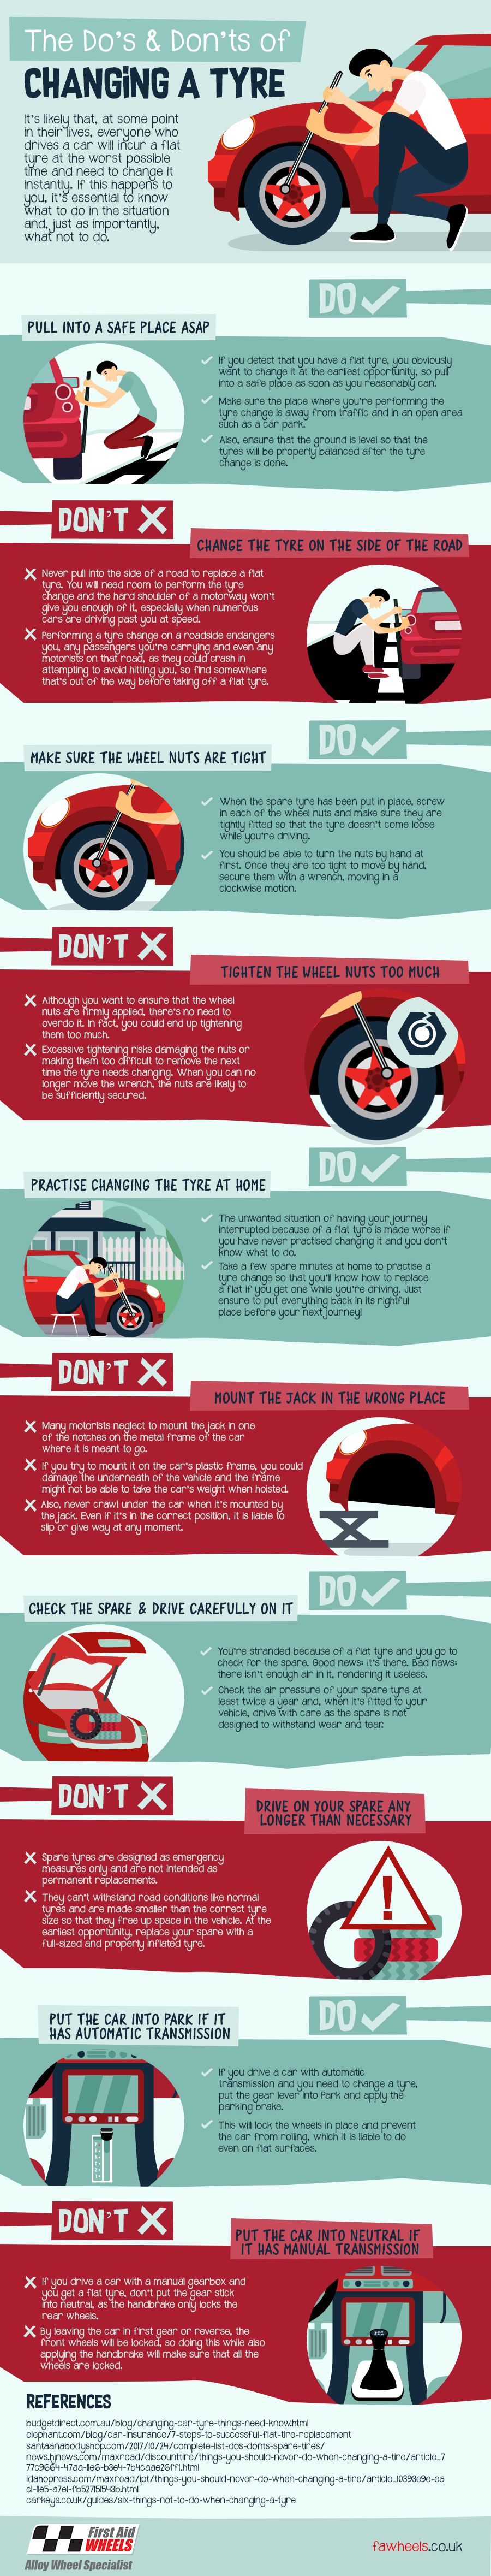 changing your tyre infographic